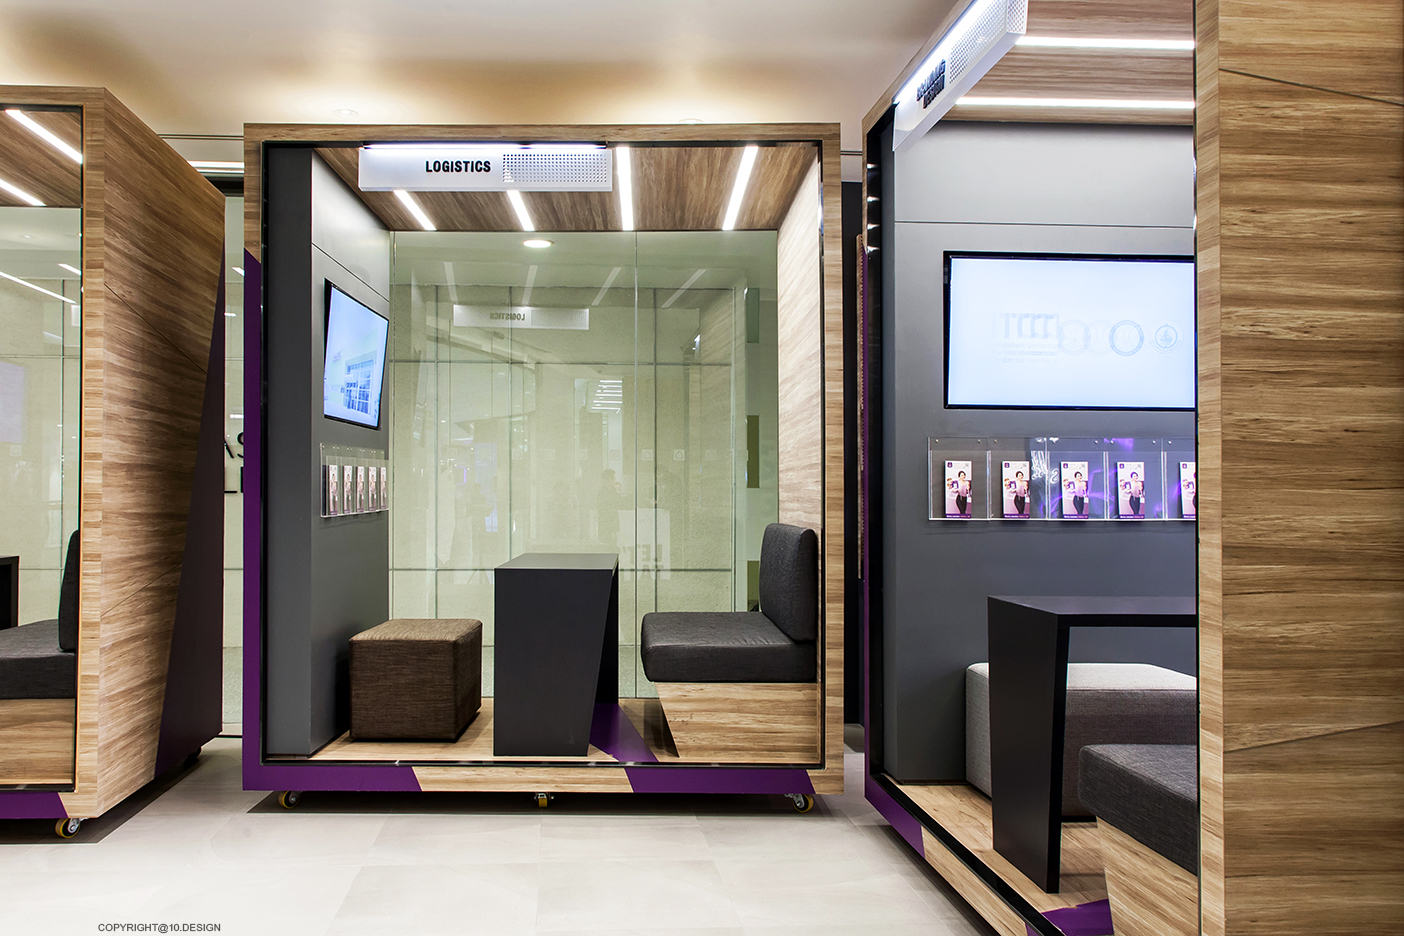 10 DESIGN SCB BANKING BUSINESS CENTER CENTRAL WORLD INTERIOR COMMERCIAL 04